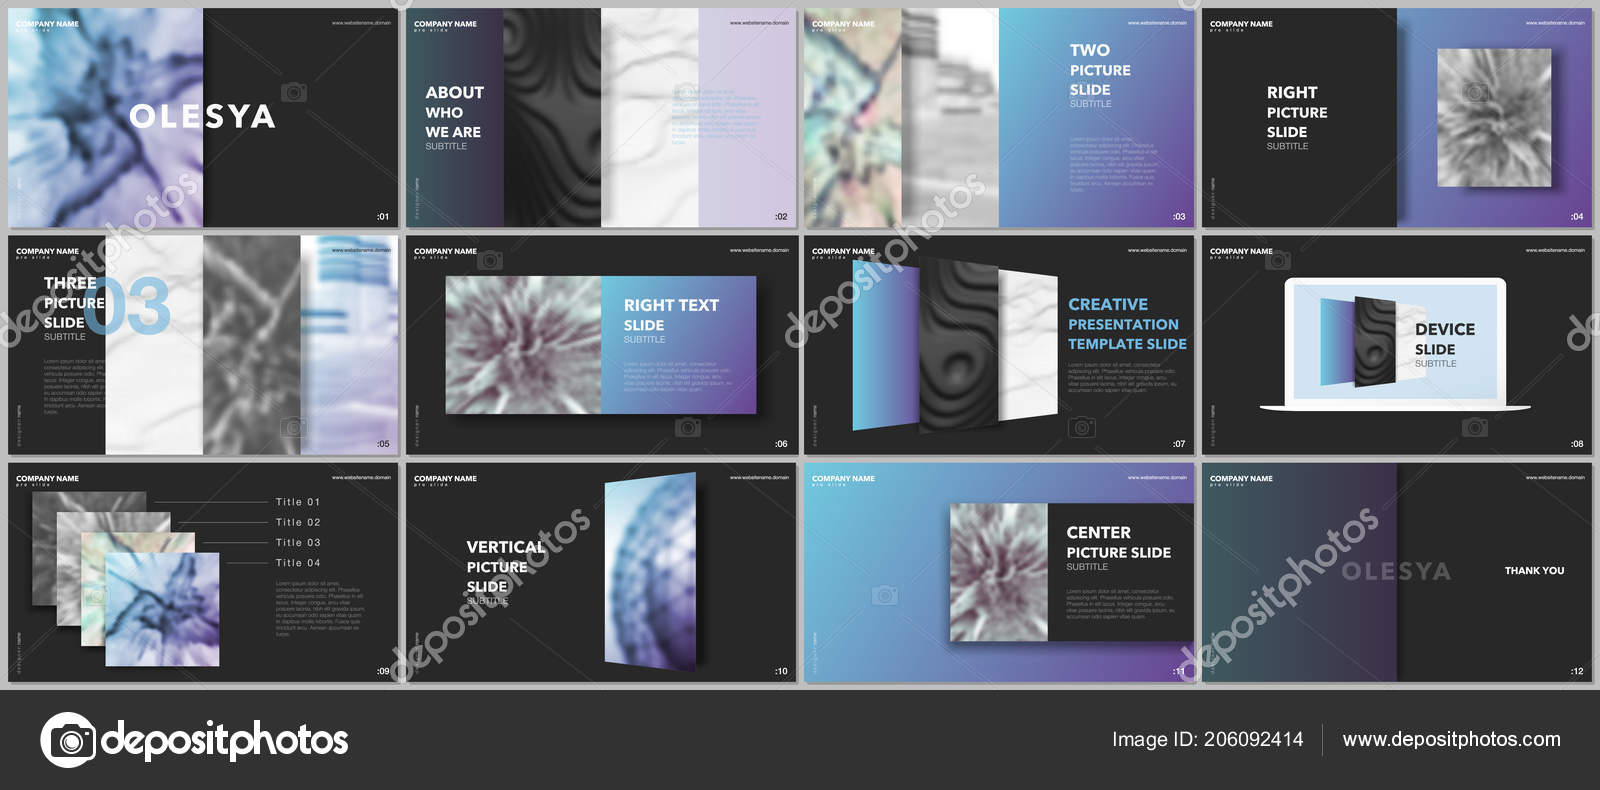 minimal presentations design portfolio vector templates with